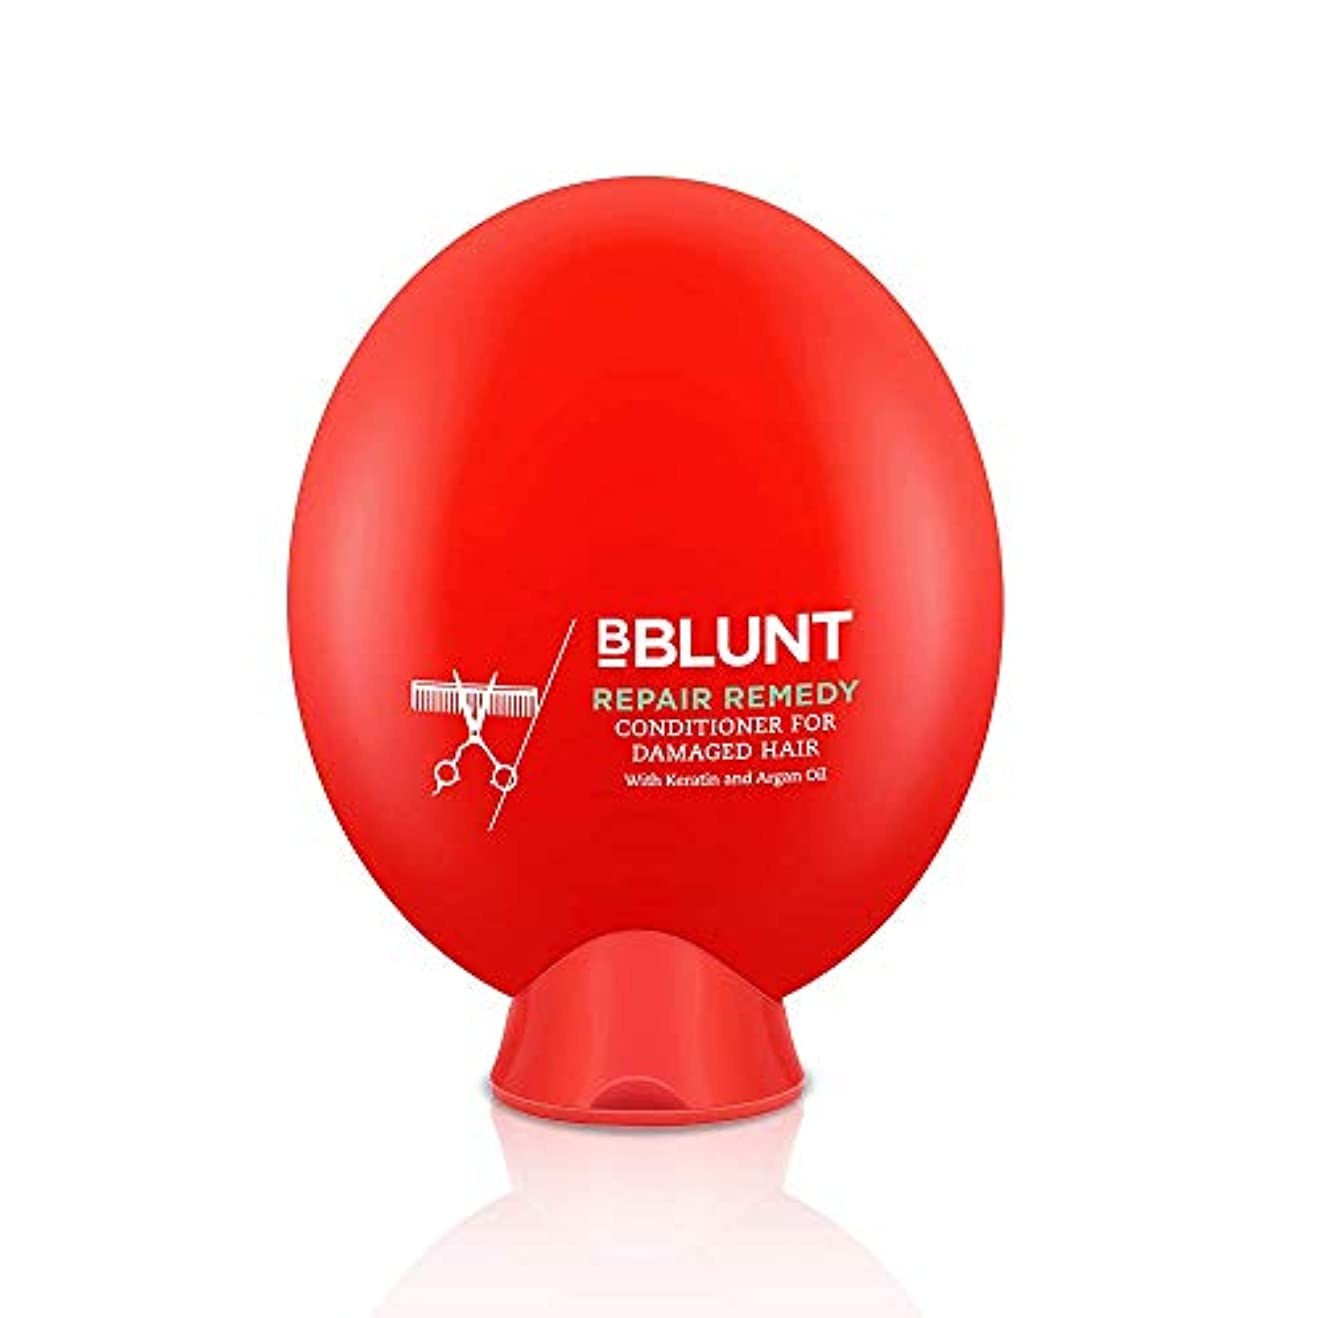 協同反響するどのくらいの頻度でBBLUNT Repair Remedy Conditioner for Damaged Hair, 200g (Keratin and Argan Oil)